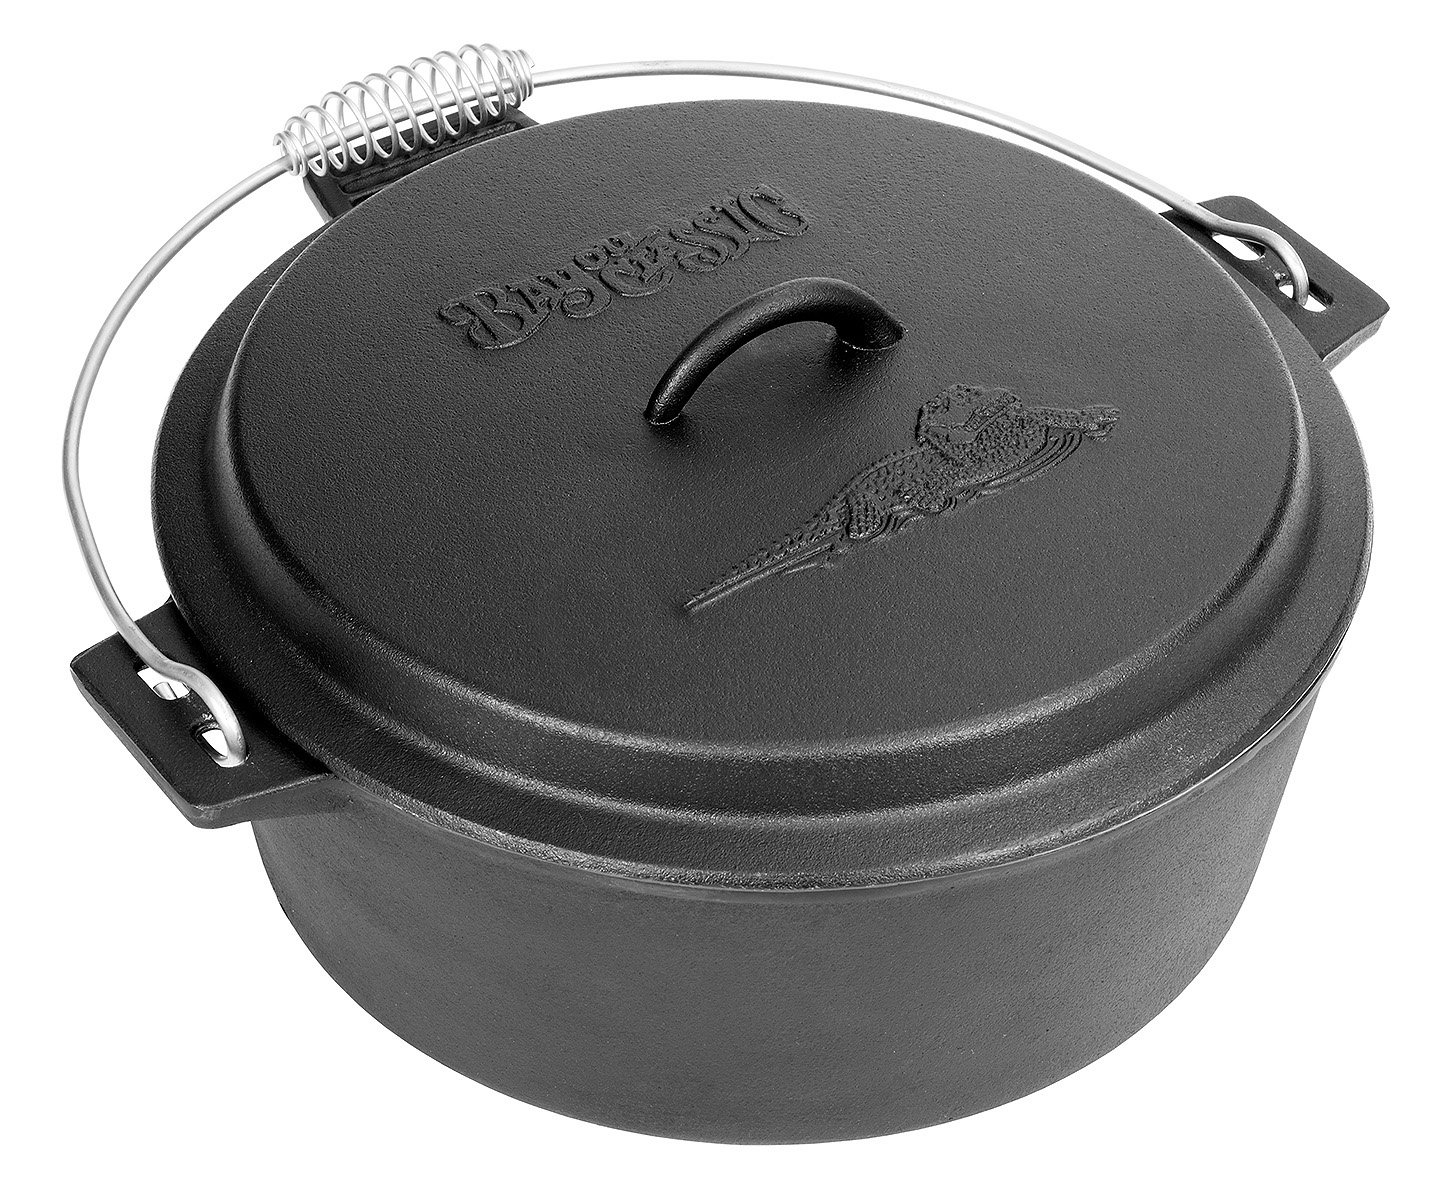 Bayou Classic 7410 Cast Iron Chicken Fryer with Dutch Oven Lid, 10 Quart, Black by Bayou Classic